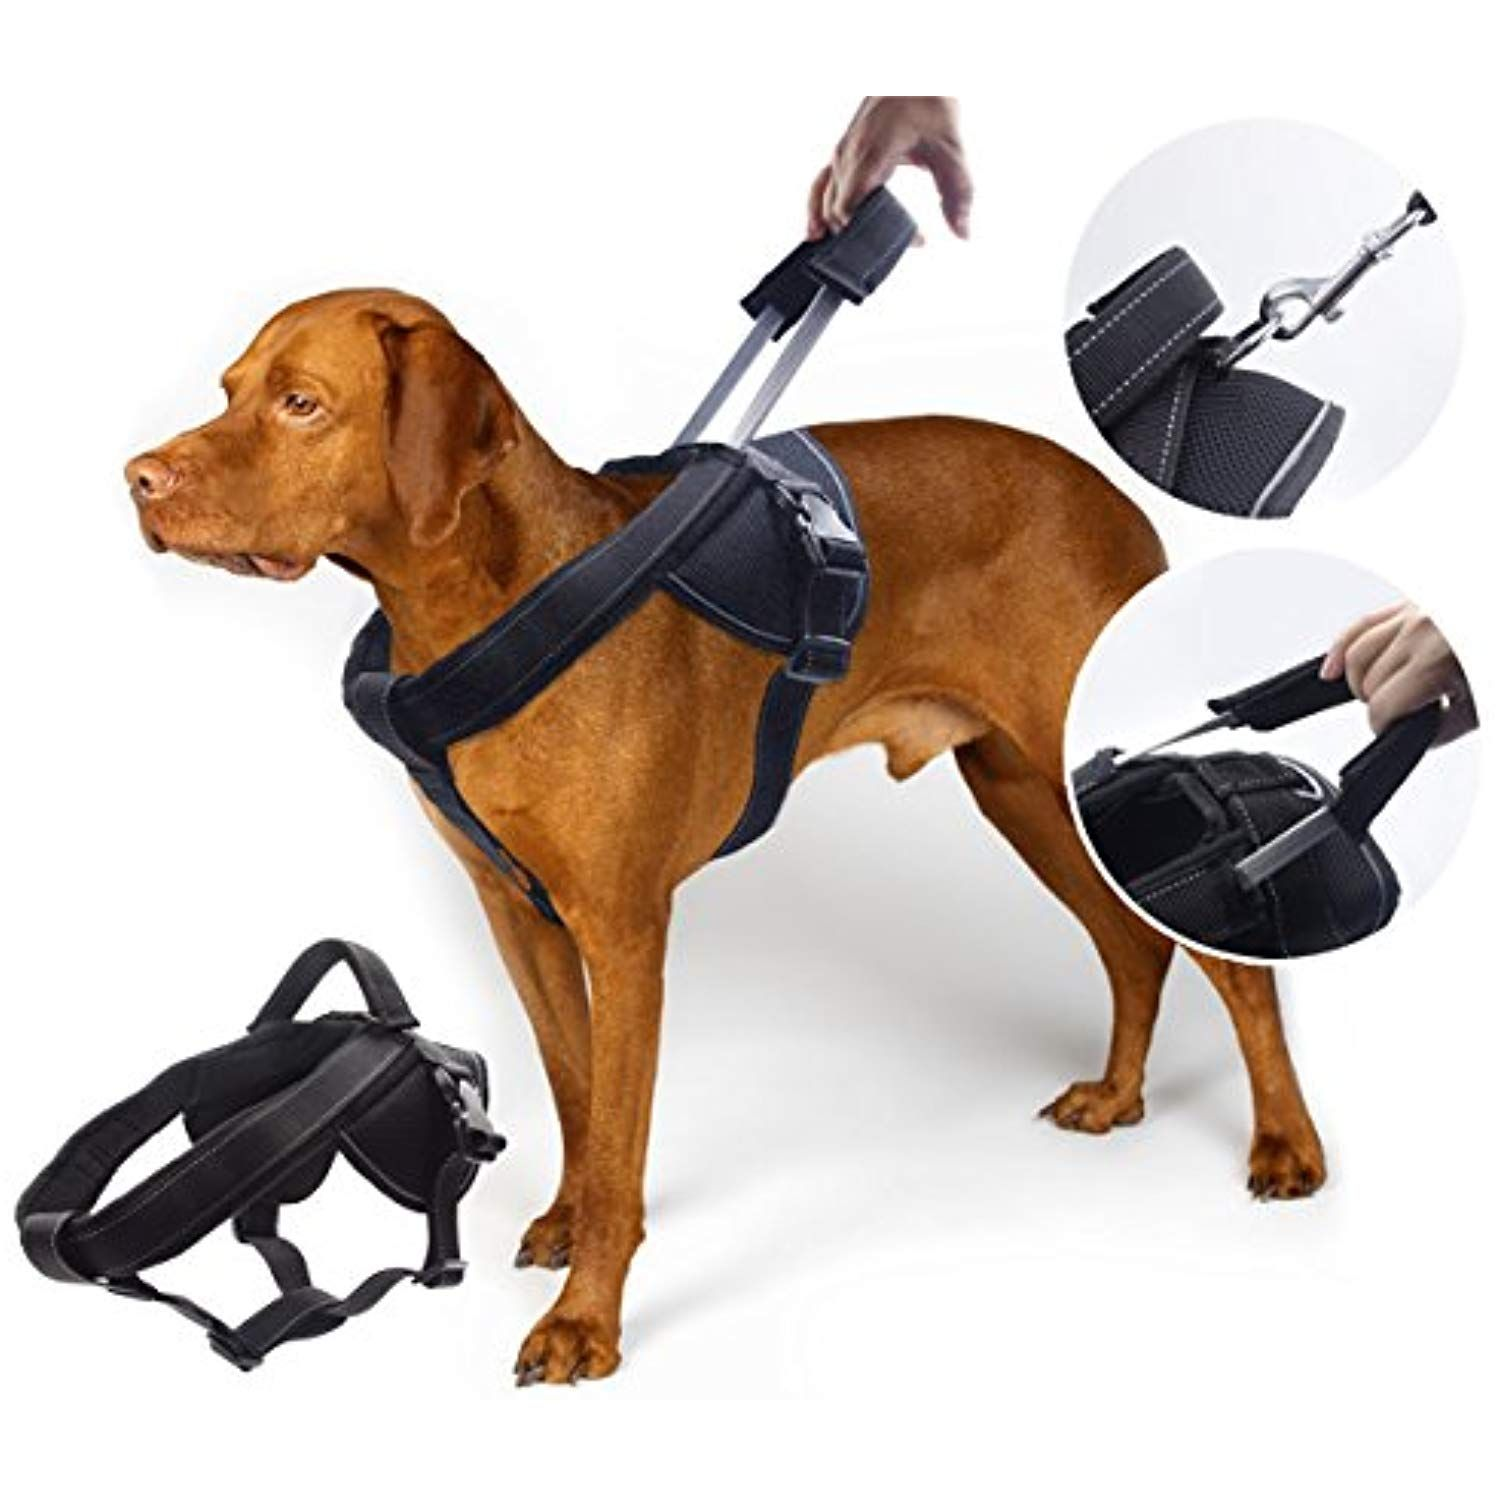 Yogadog Heavy Duty Dog Harness Soft Padded With Special